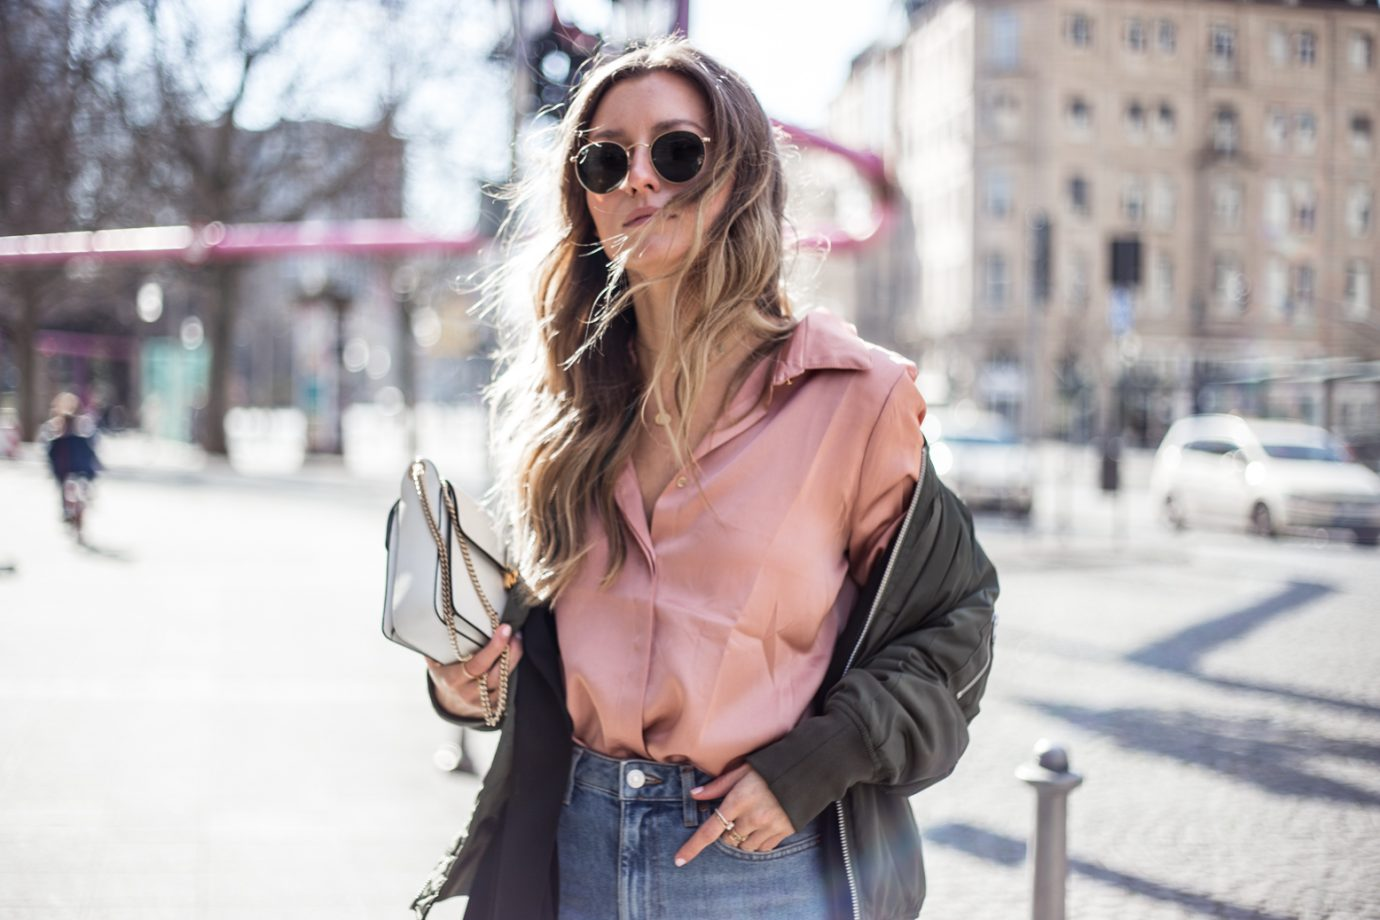 BOMBER JACKET, MULES, SATIN SHIRT